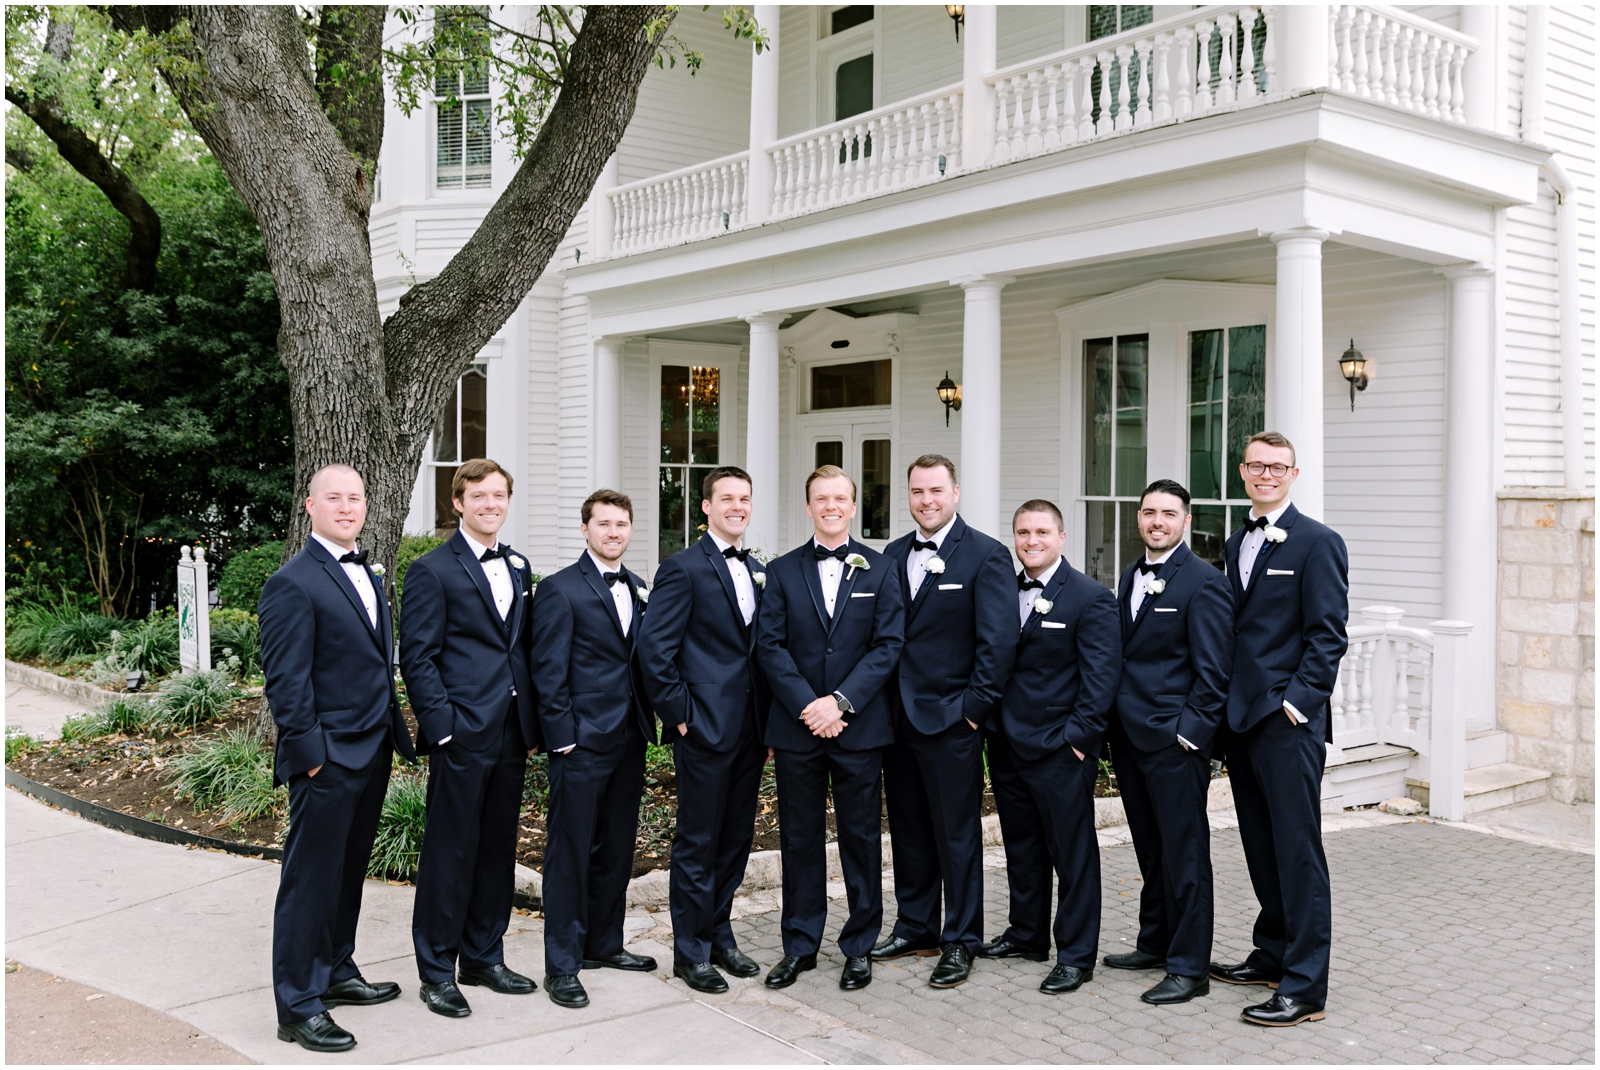 Groomsmen with the groom before the wedding